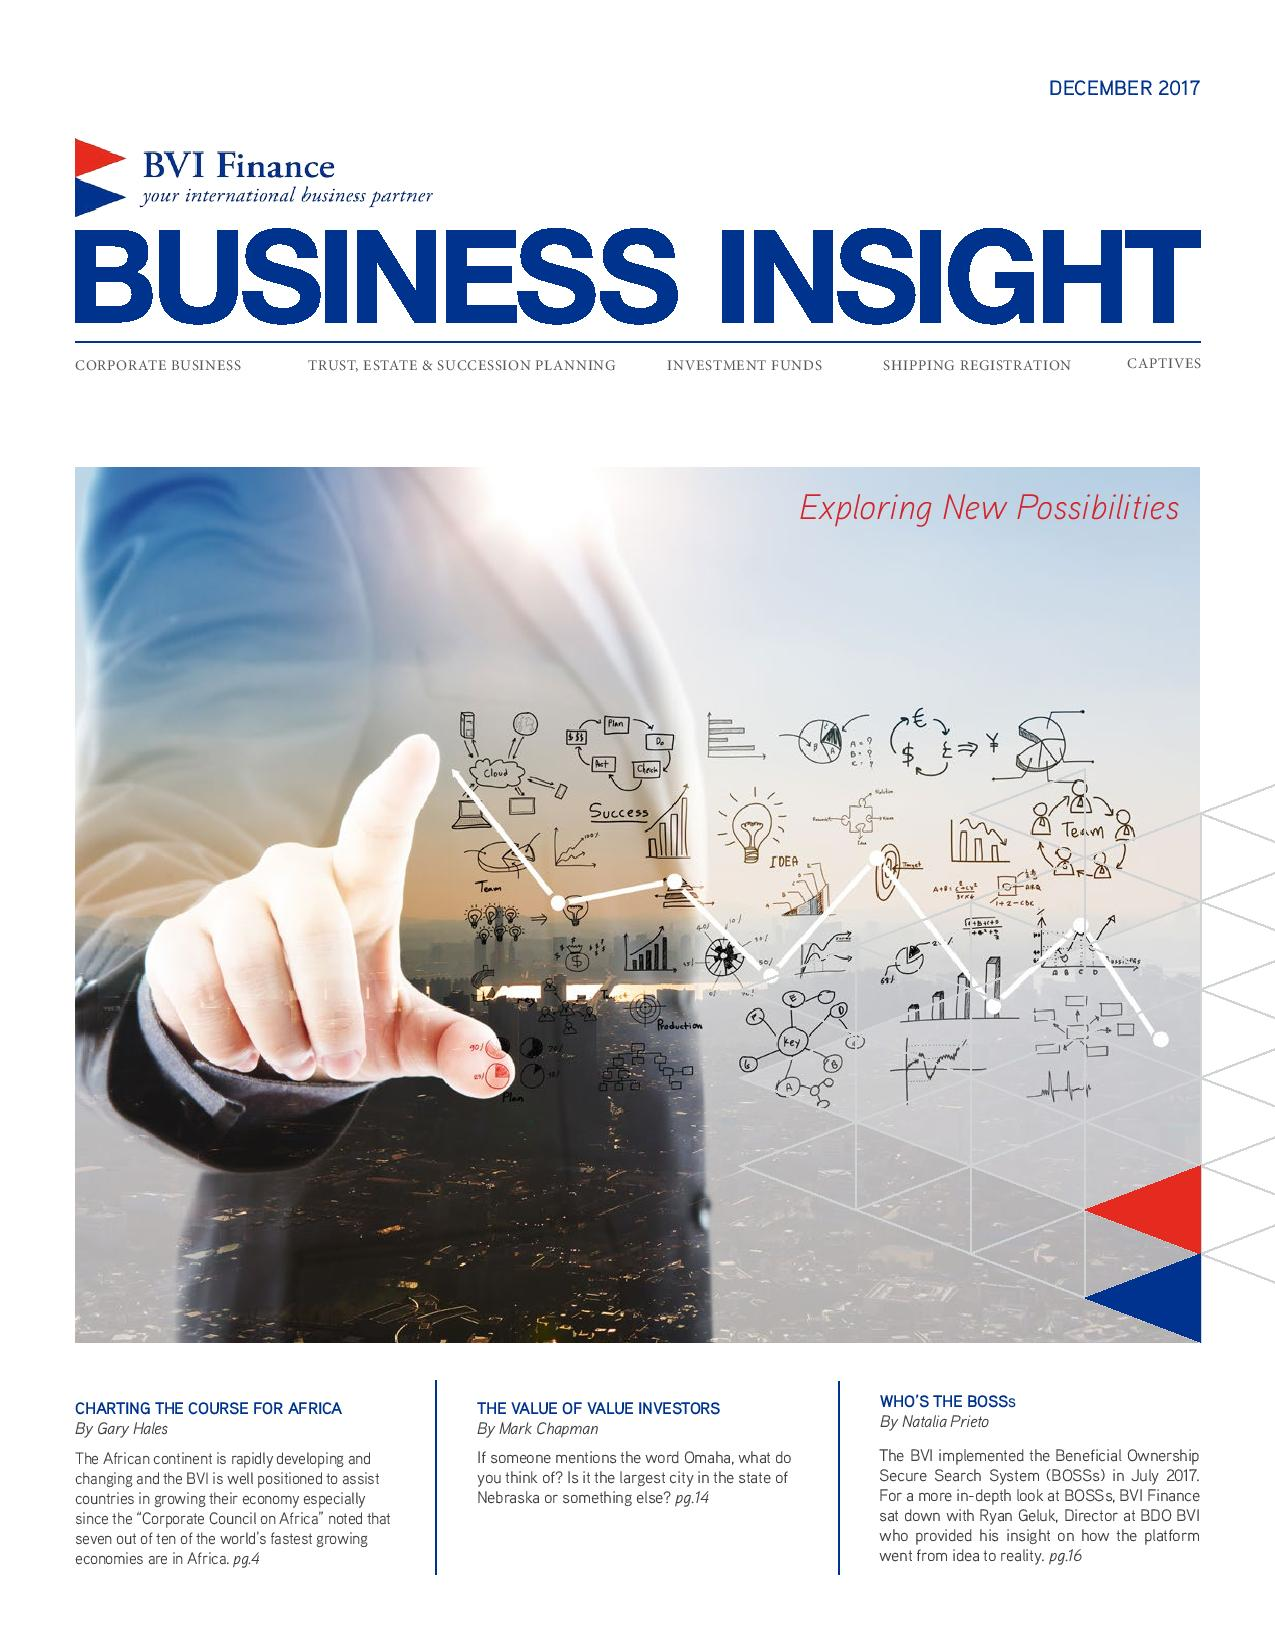 Business Insight: Exploring New Possibilities